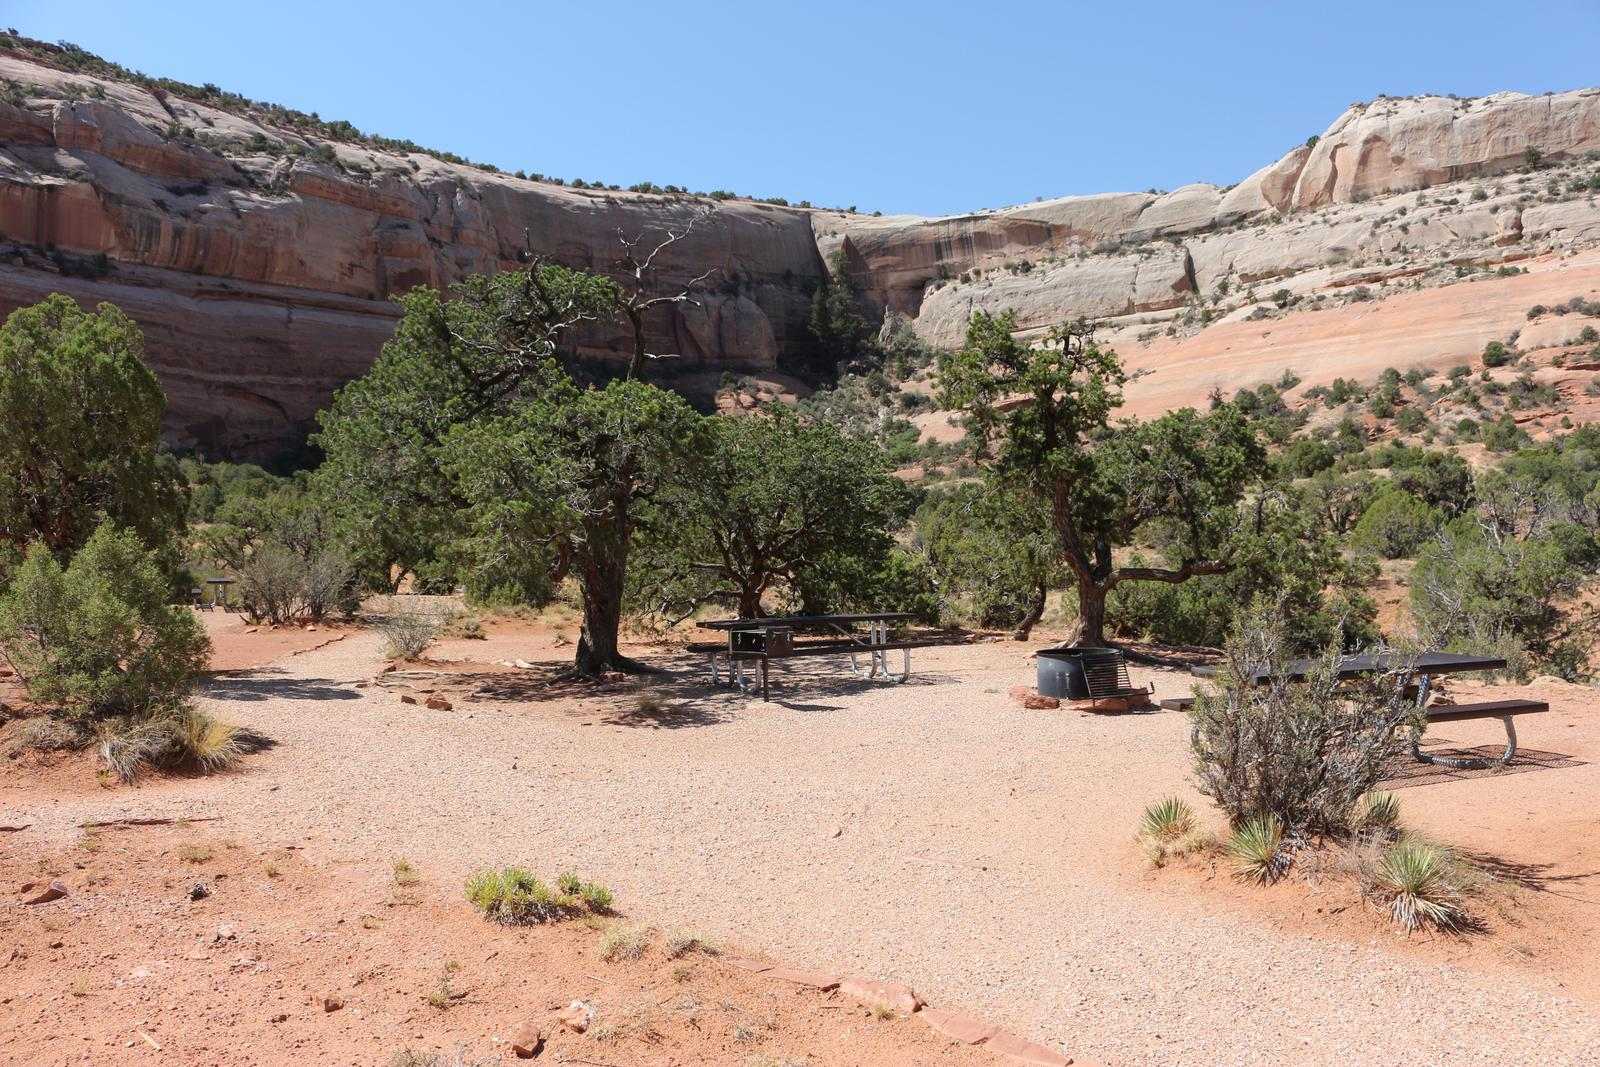 Windwhistle Group Site camping area with picnic tables and a fire pit. Tall, slick rock walls line the horizon.